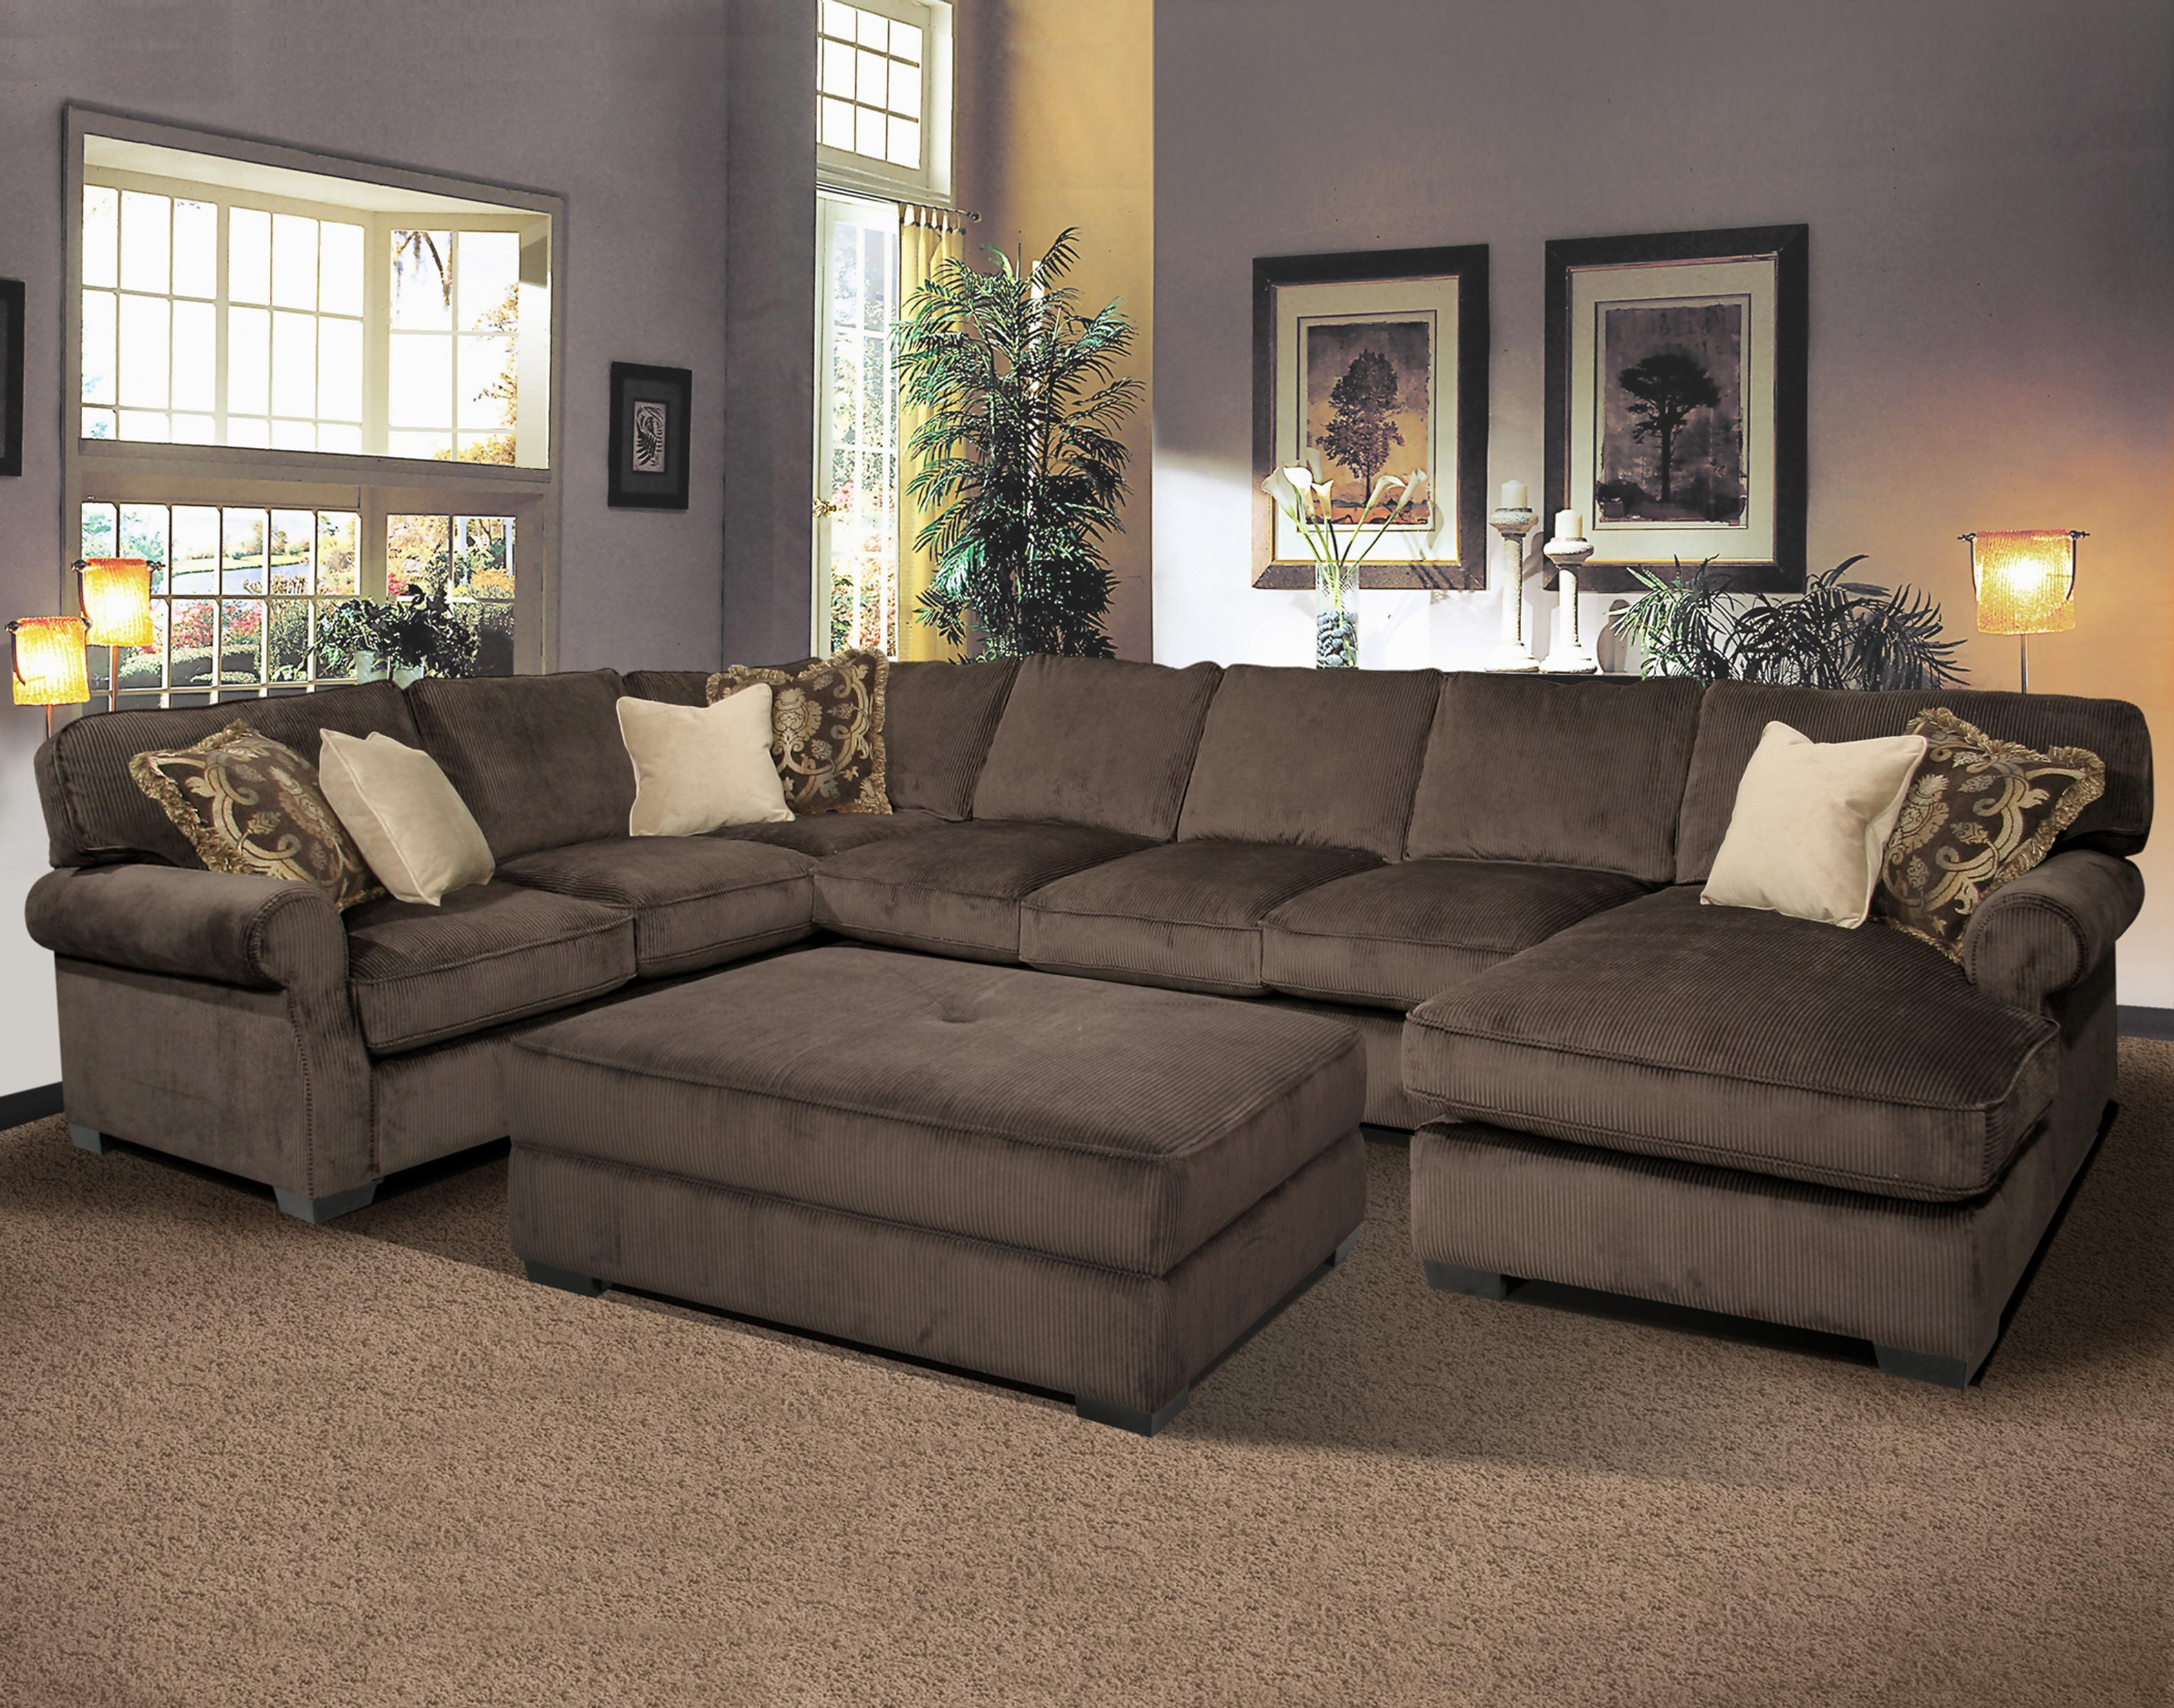 20 Best Large Comfortable Sectional Sofas  Sofa Ideas